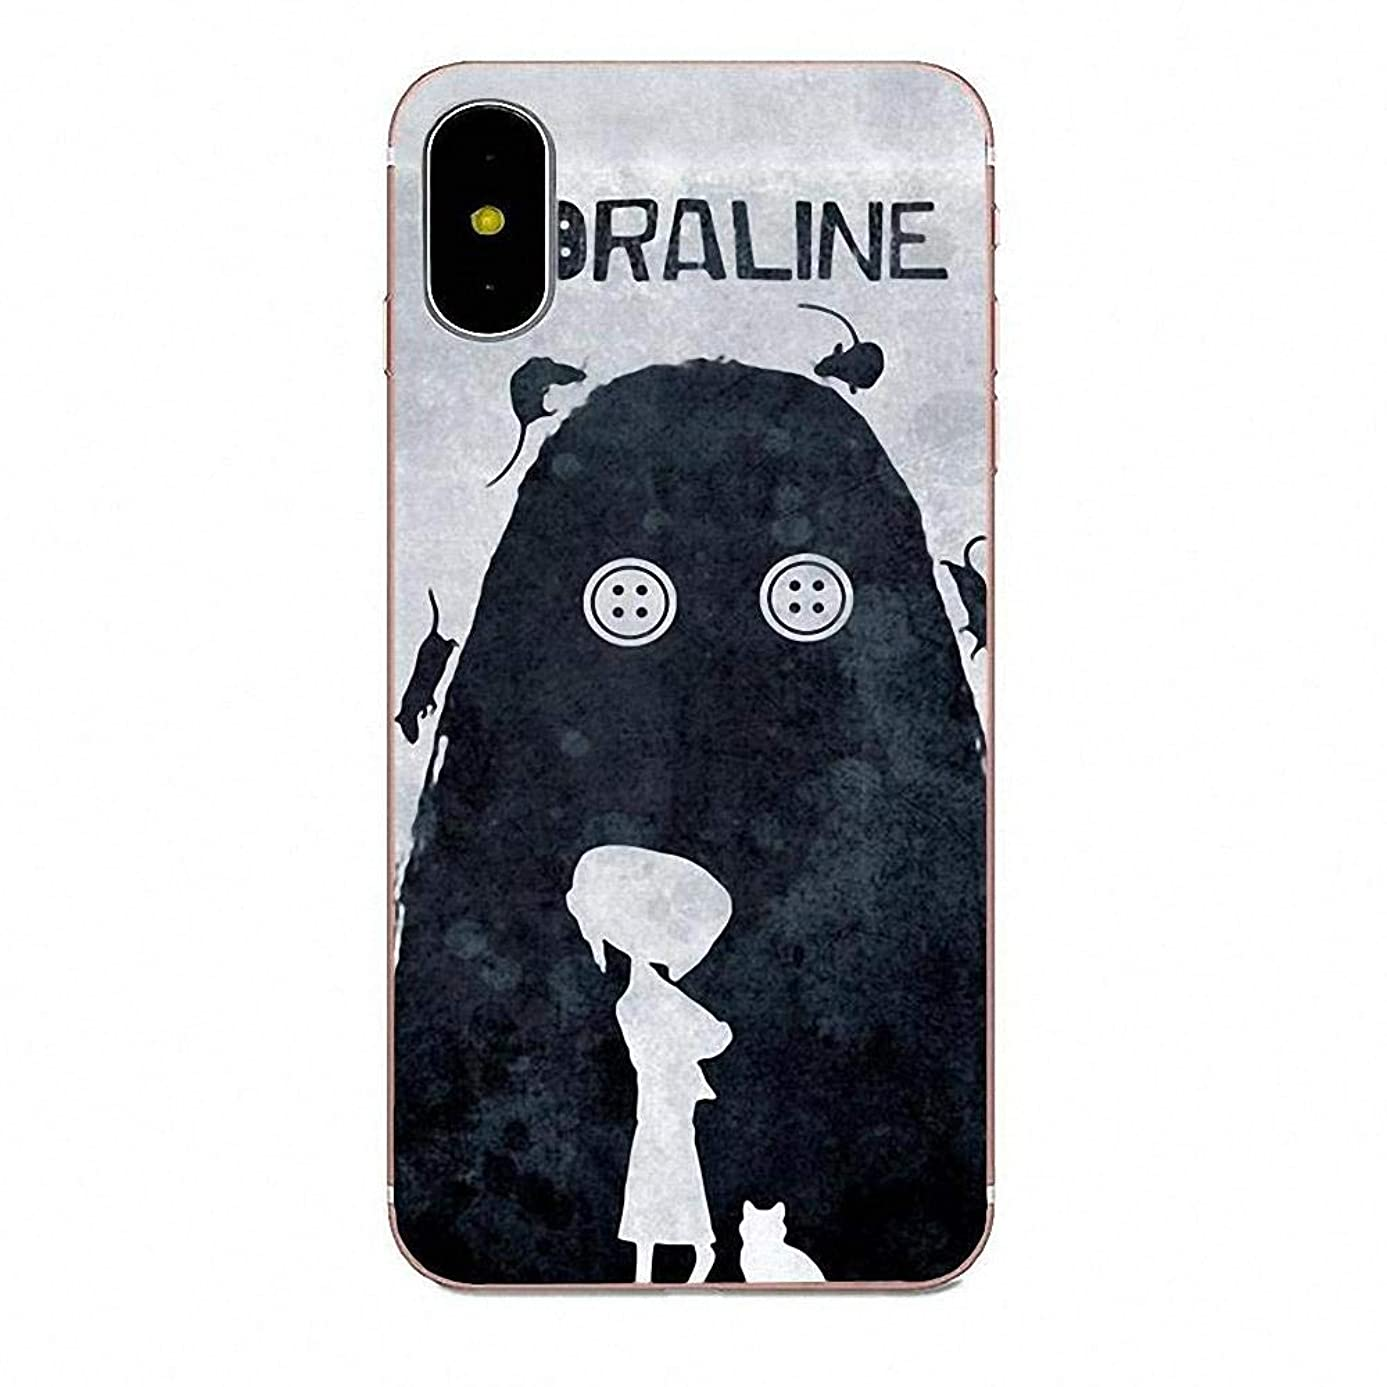 Inspired by Coraline Phone Case Compatible With Iphone 7 XR 6s Plus 6 X 8 9 Cases XS Max Clear Iphones Cases High Quality TPU Silicone - Non-Toxic?- Raincoat Merch - Ket 3T Sheets - 33012073449